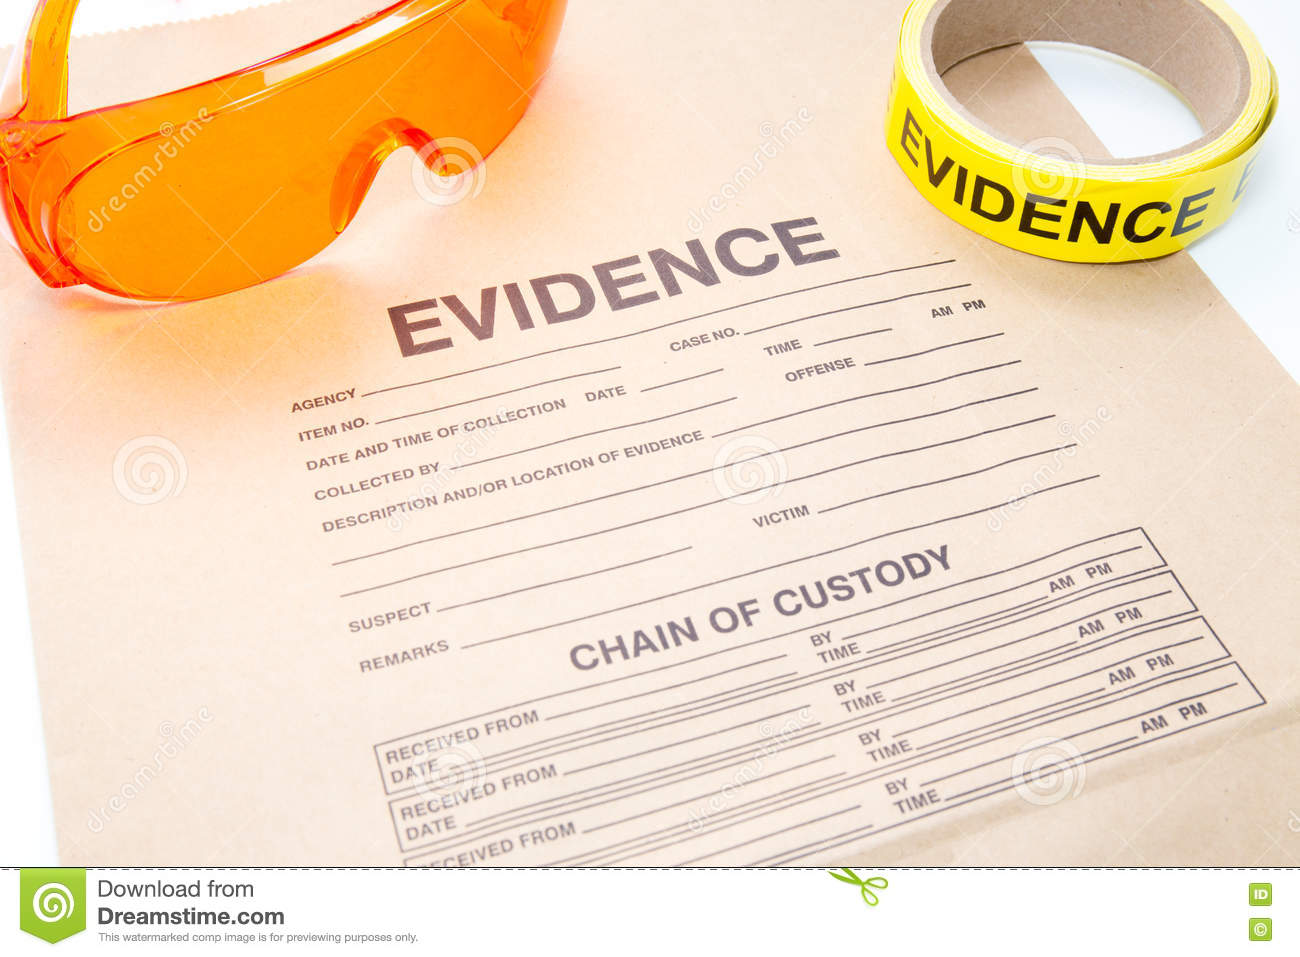 Evidence Bag With Forensic Tool For Crime Scene Investigation Stock Image Image Of Investigation Glasses 66622623